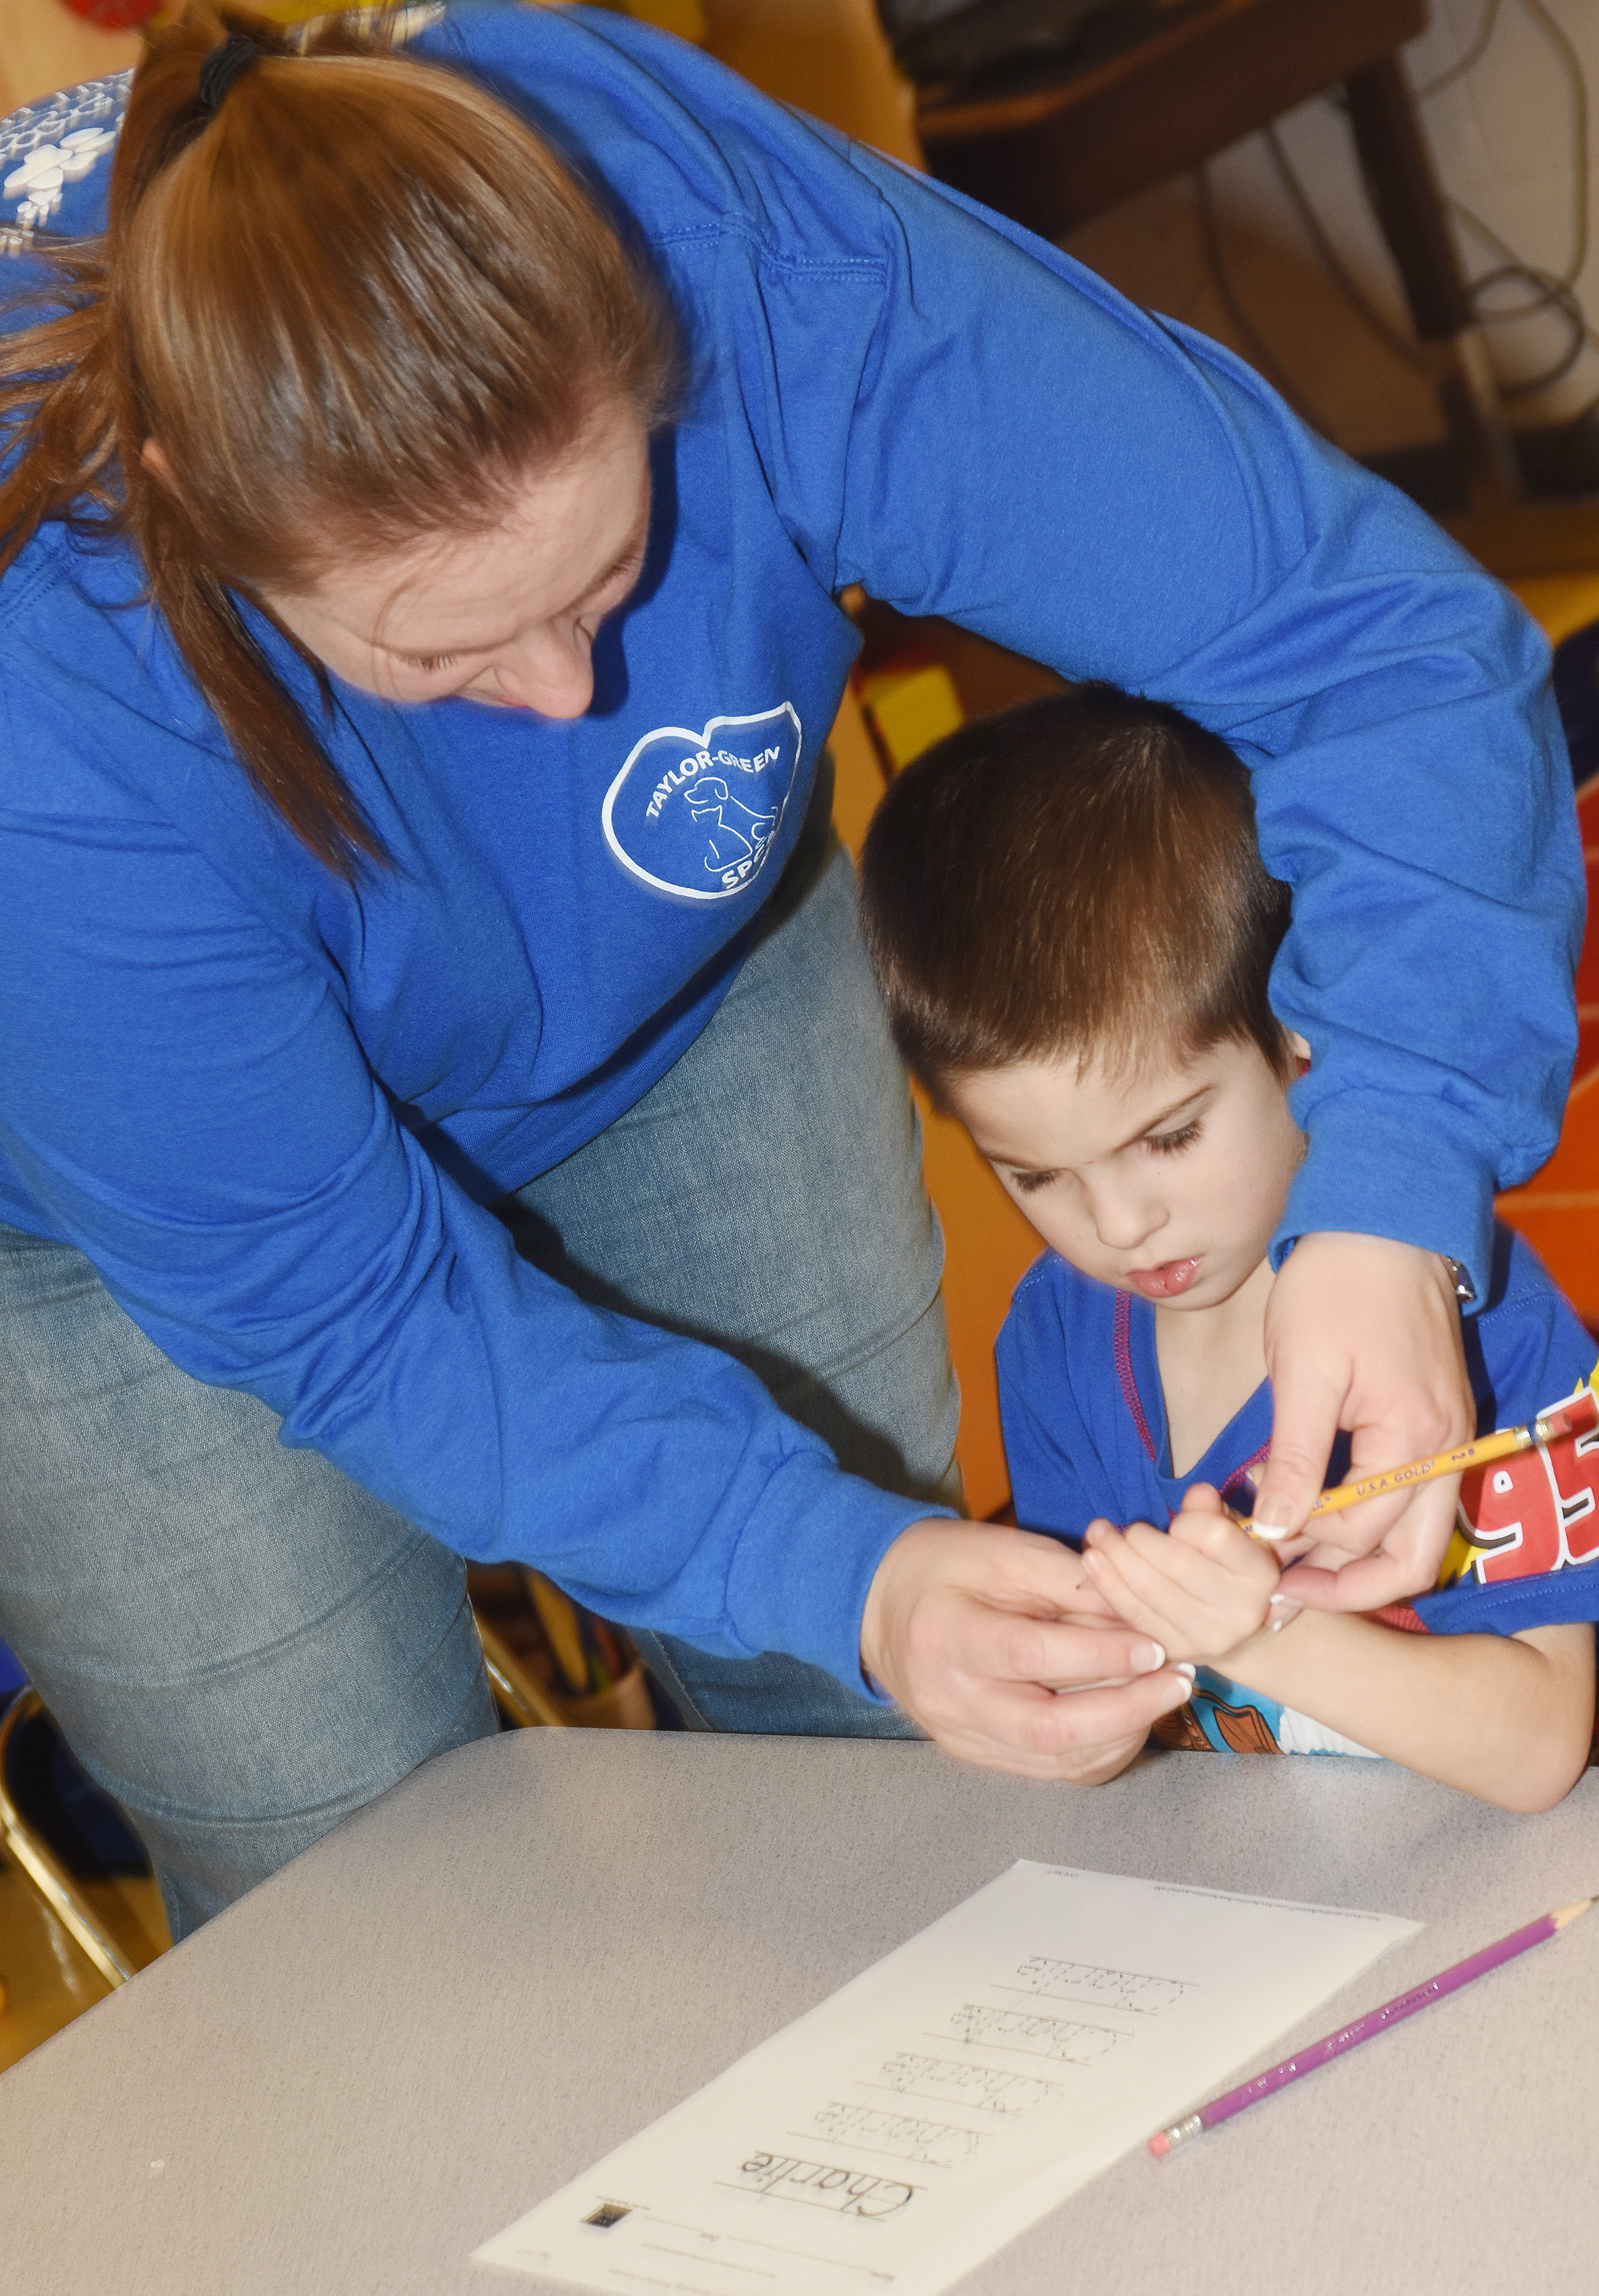 CES preschool teacher Julie Shelton helps Charlie Woodbury write his name.